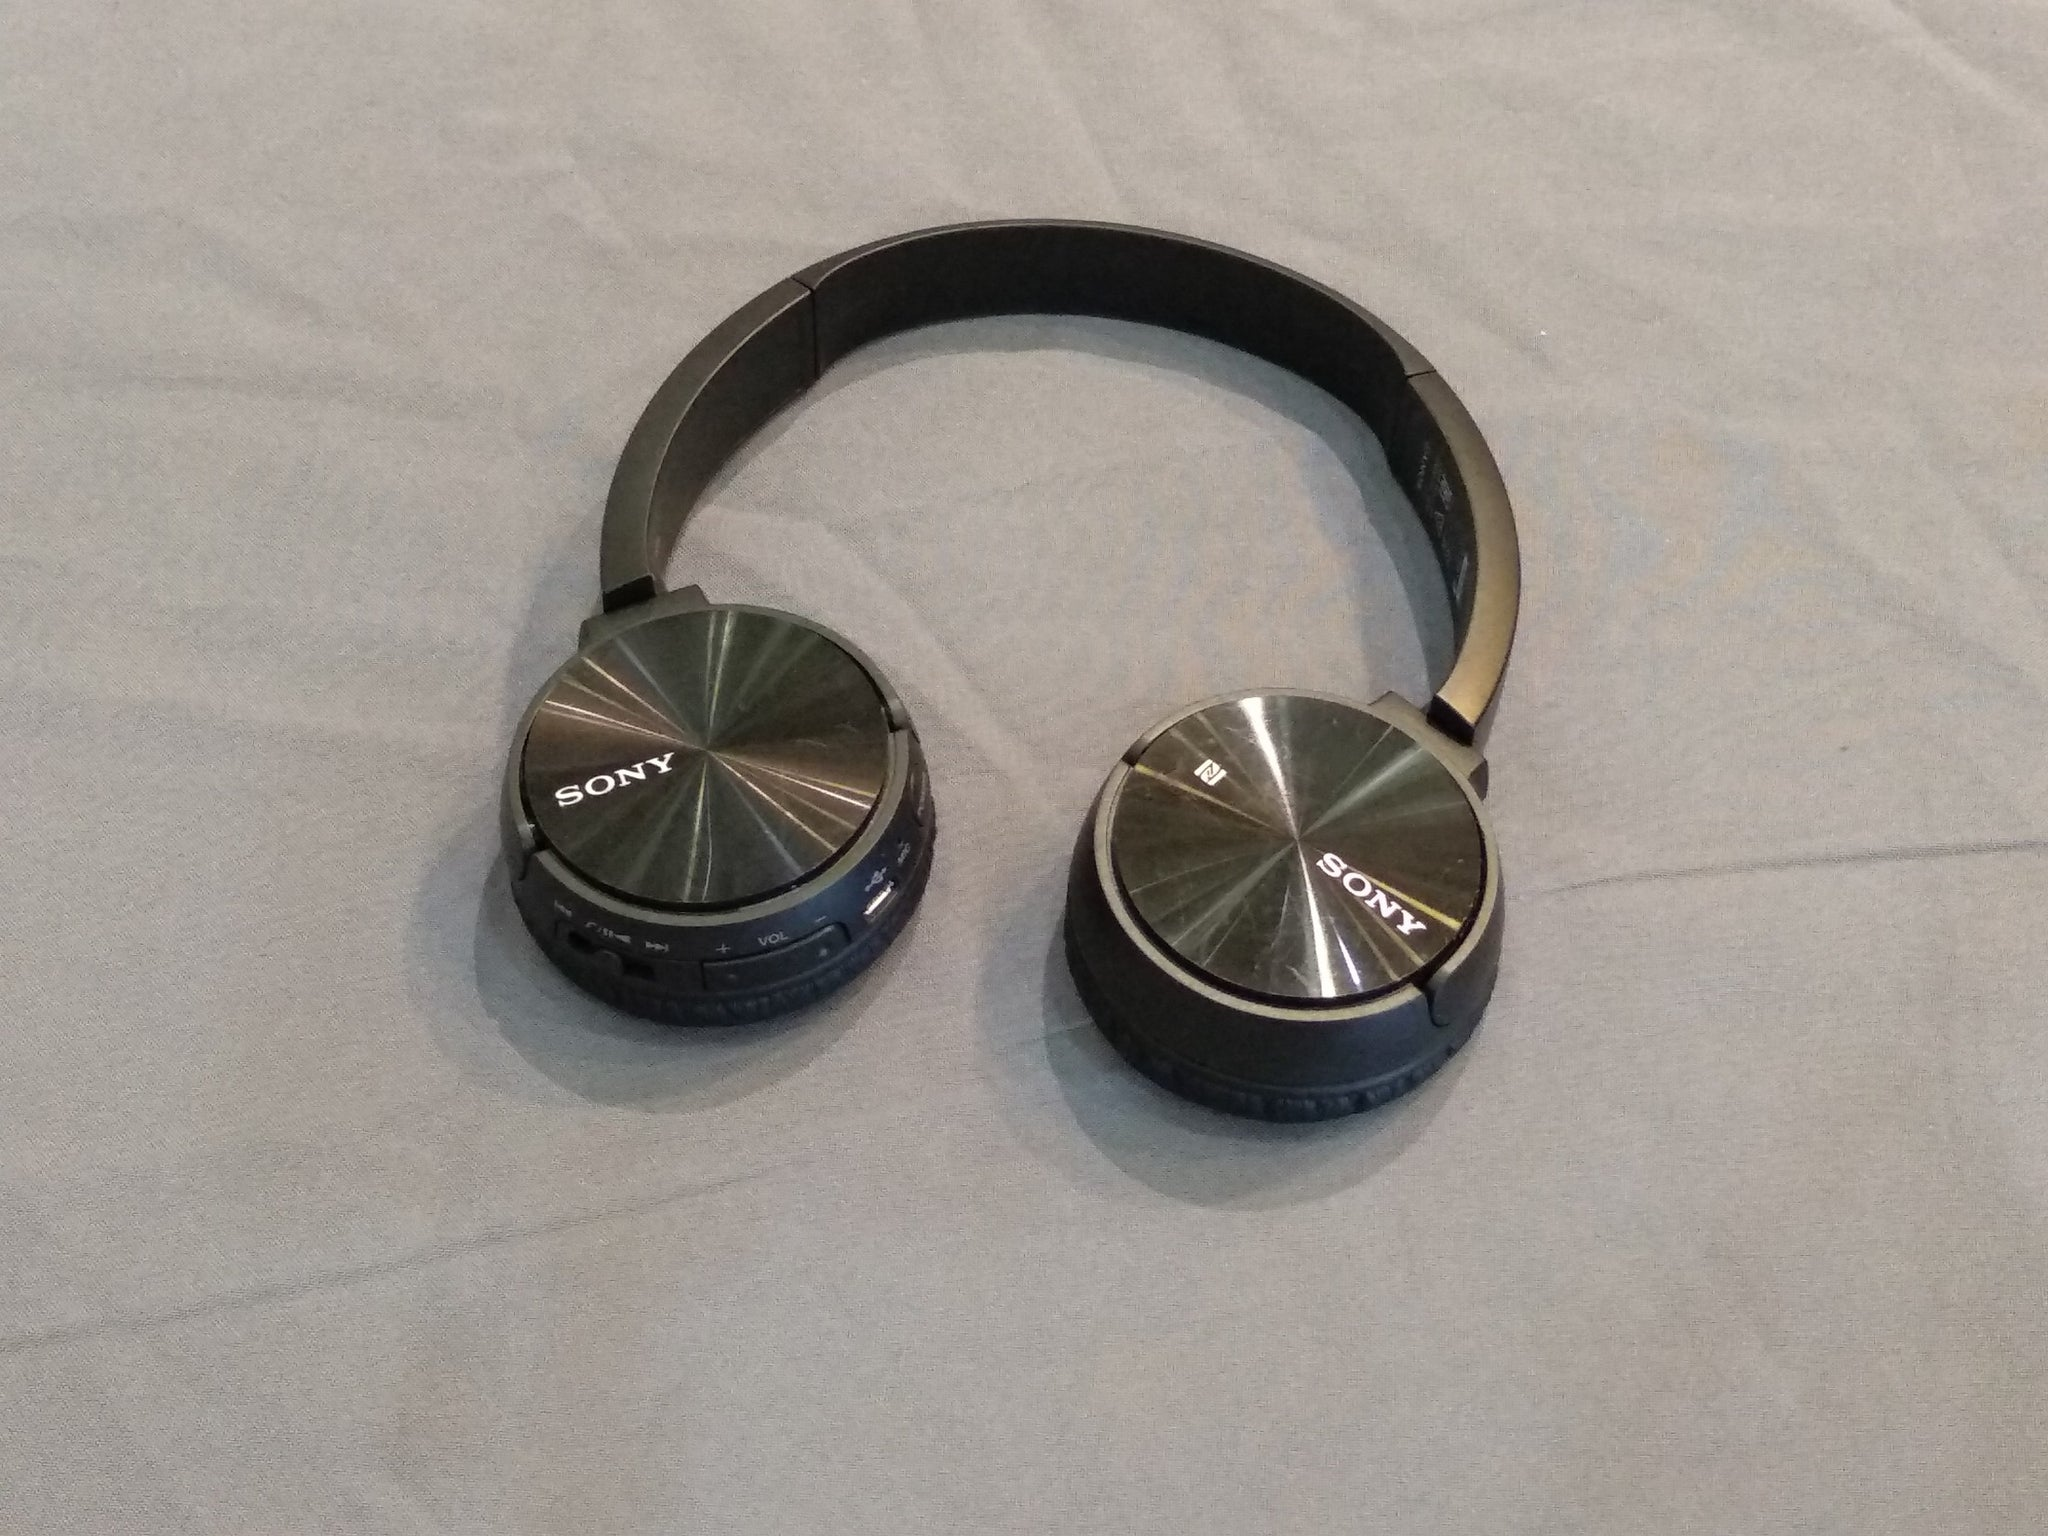 Sony MDR-ZX330BT Demo (Kuching)